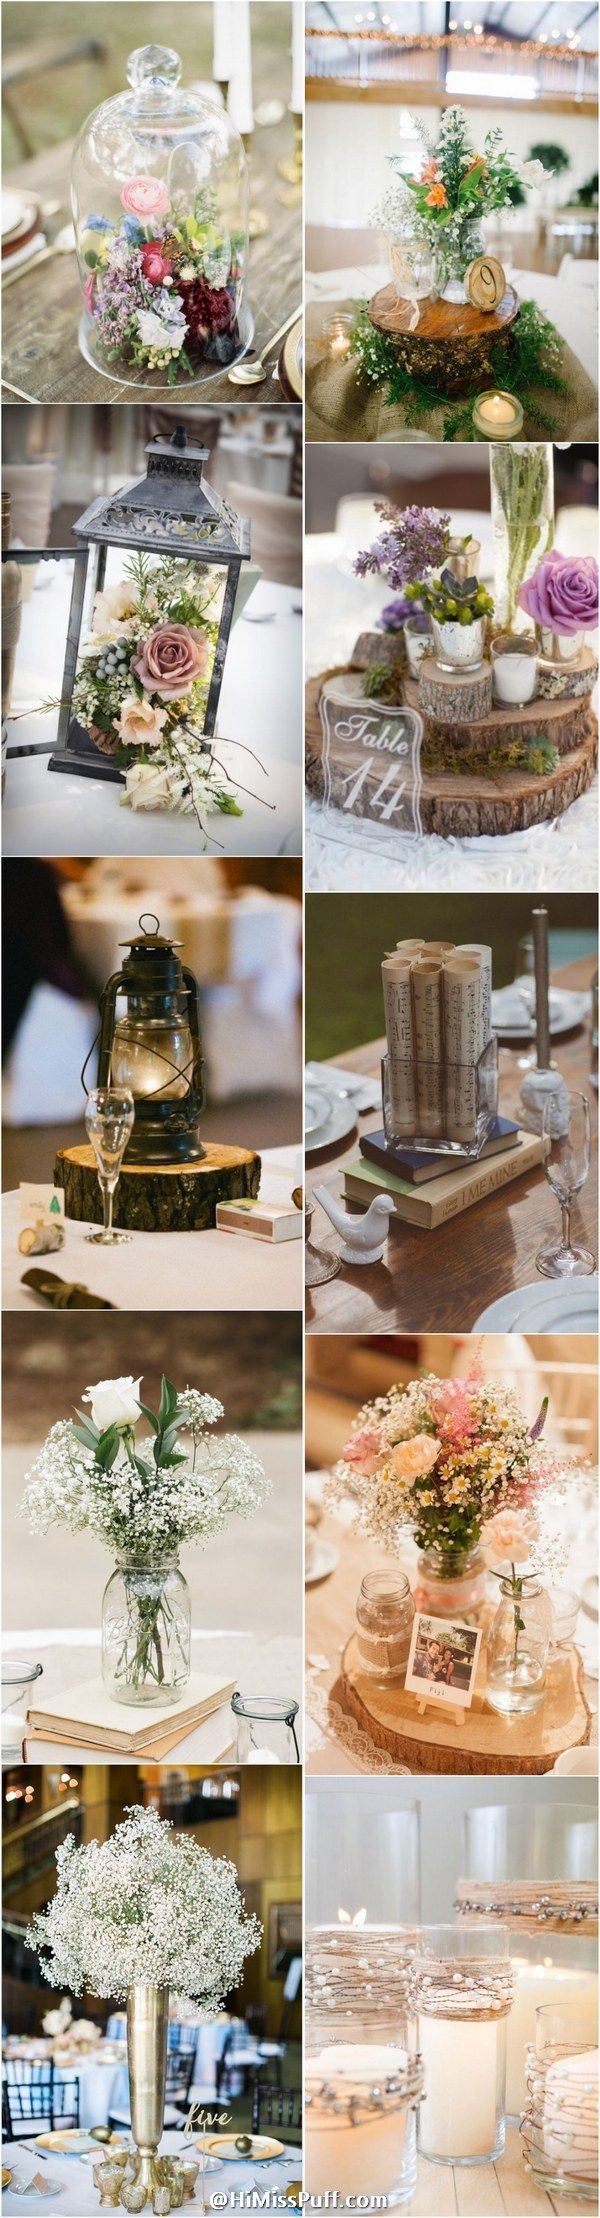 100 Country Rustic Wedding Centerpiece Ideas / http://www.himisspuff.com/rustic-wedding-centerpiece-ideas/